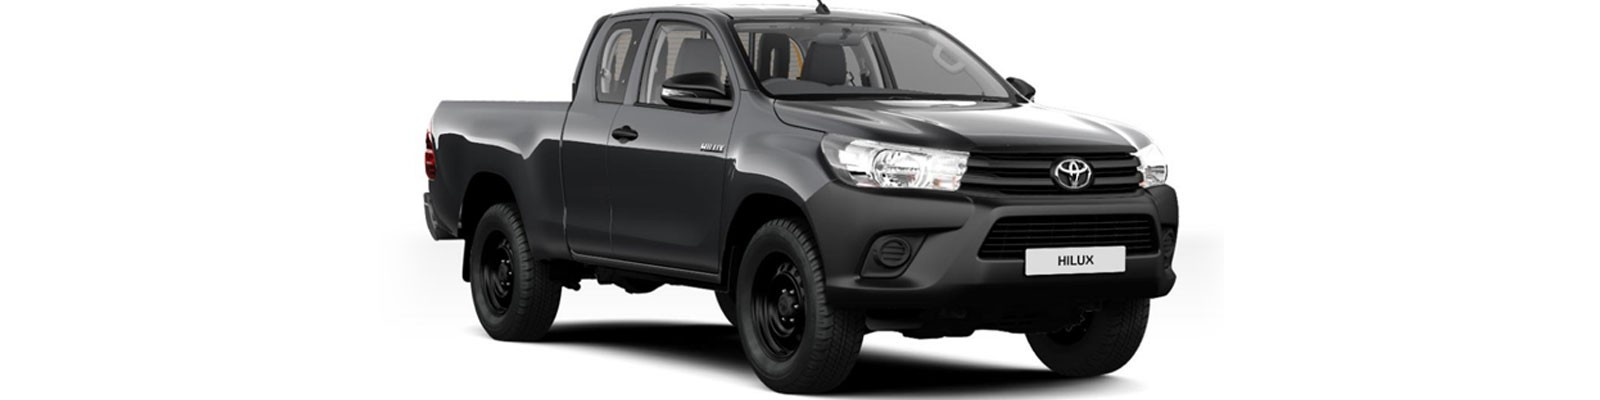 Accessories For Toyota Hilux Extra Cab 2016 Onwards